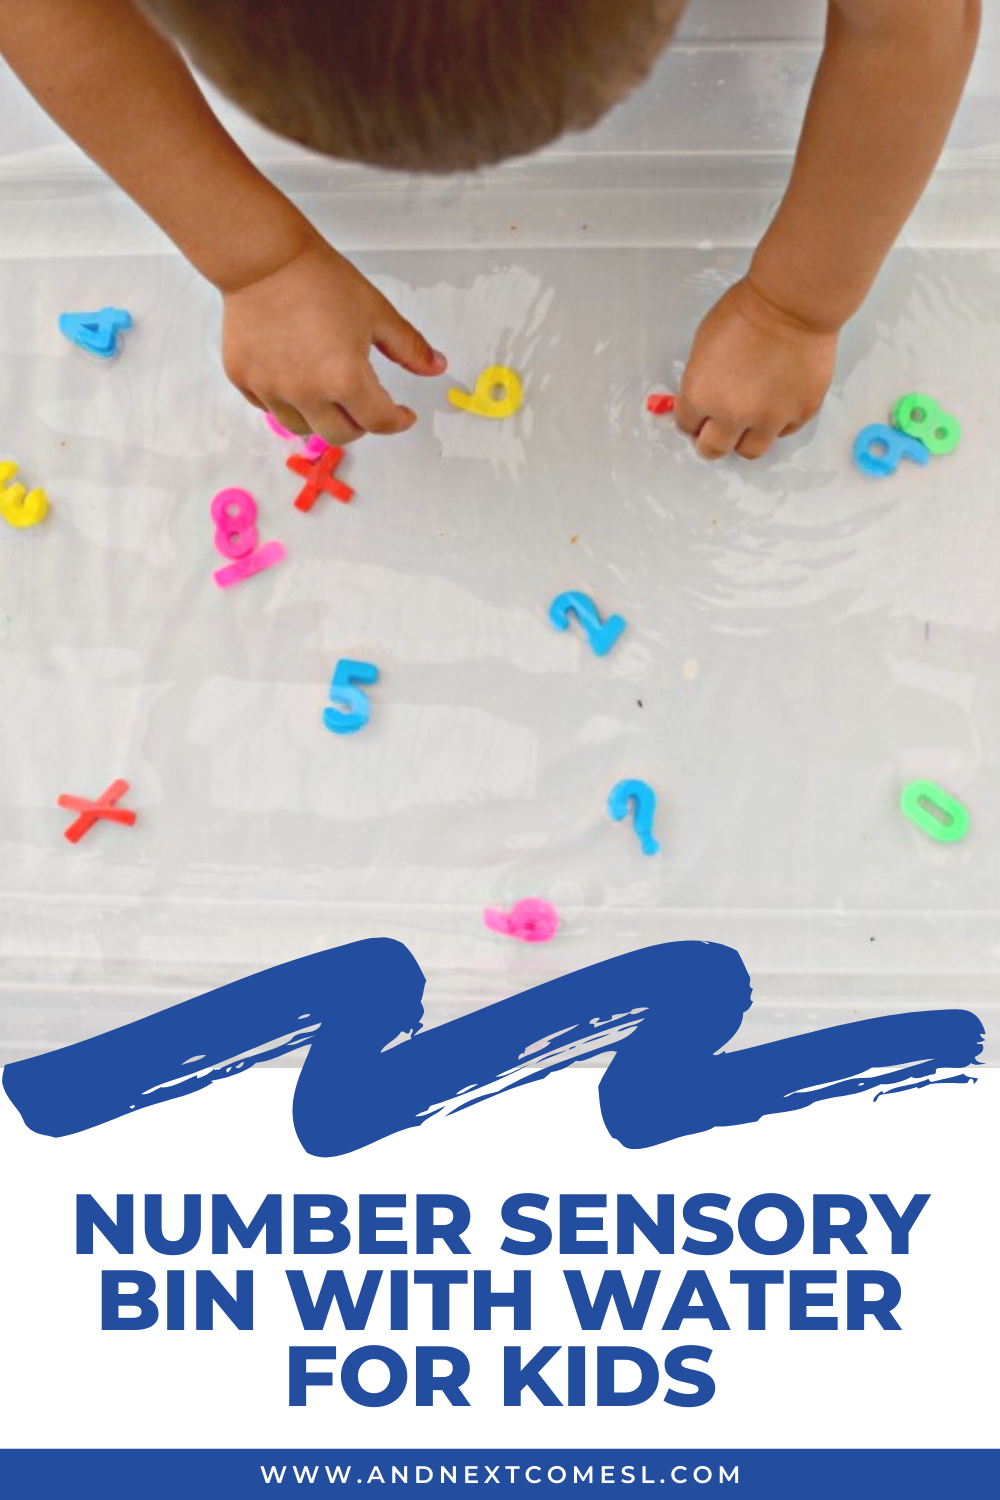 Number sensory bin idea - Your toddlers and preschoolers will love fishing for numbers with this fun water math activity!